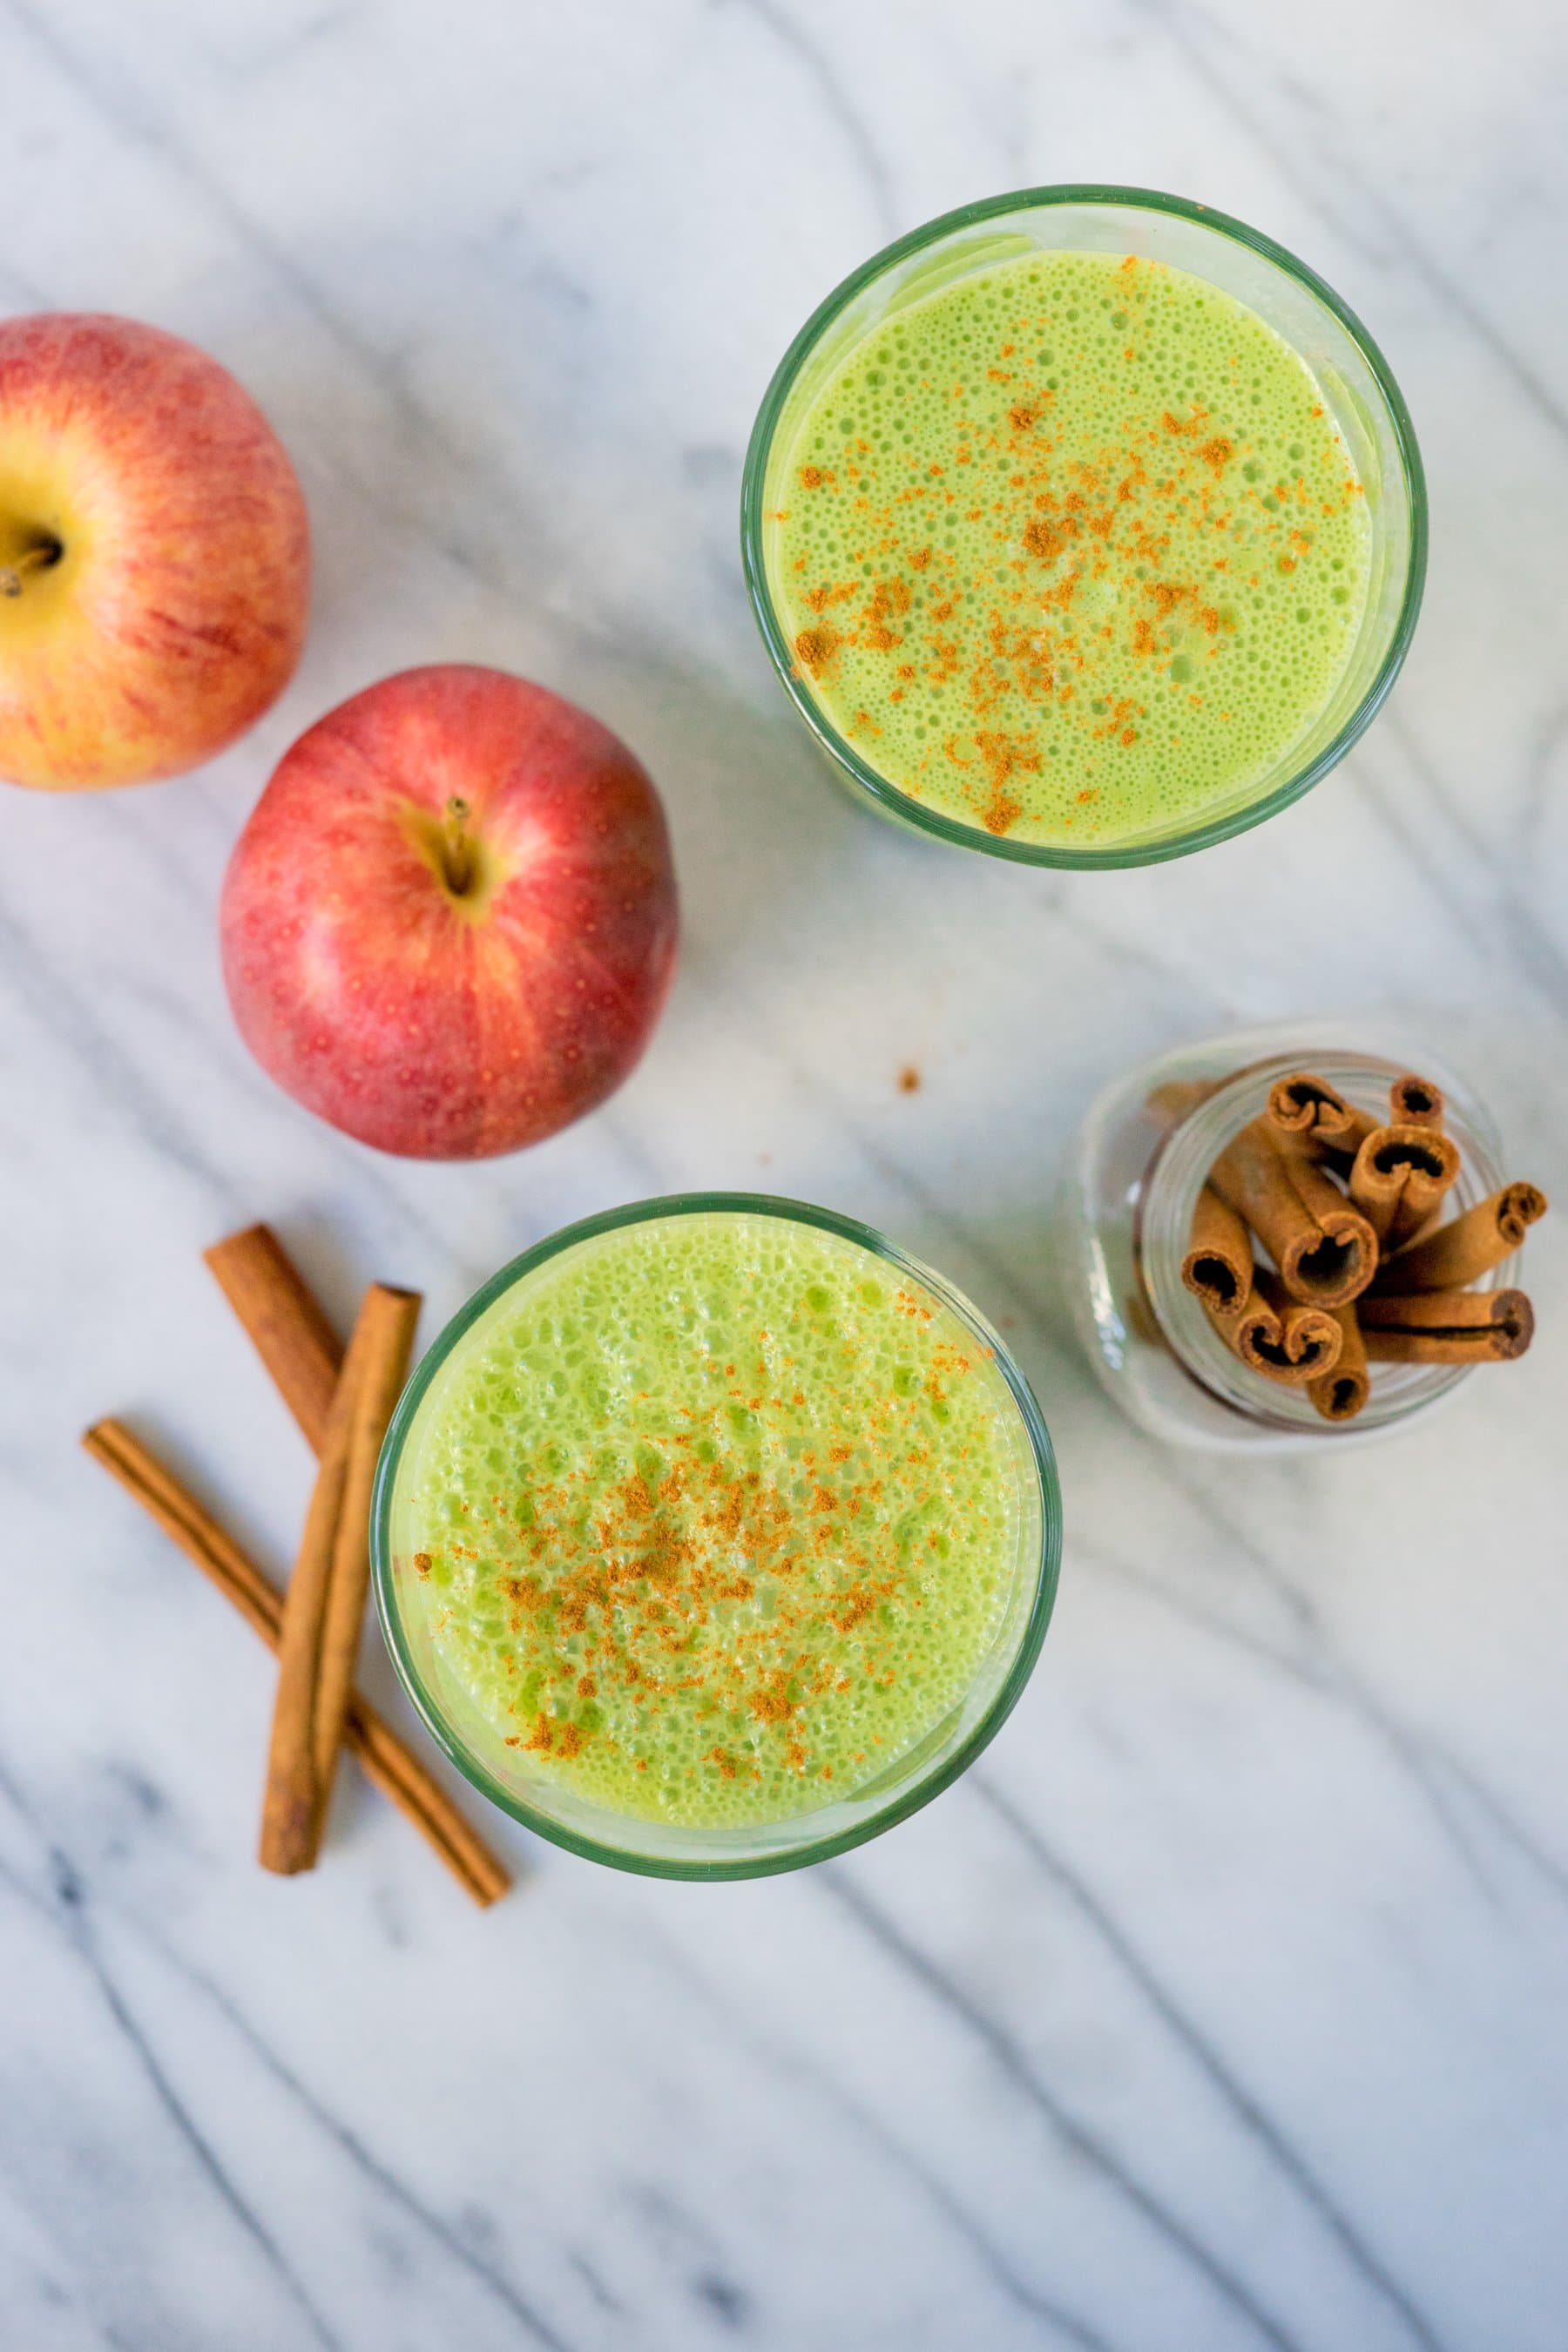 Overhead view of two glasses of green smoothie with apples and cinnamon sticks surrounding them